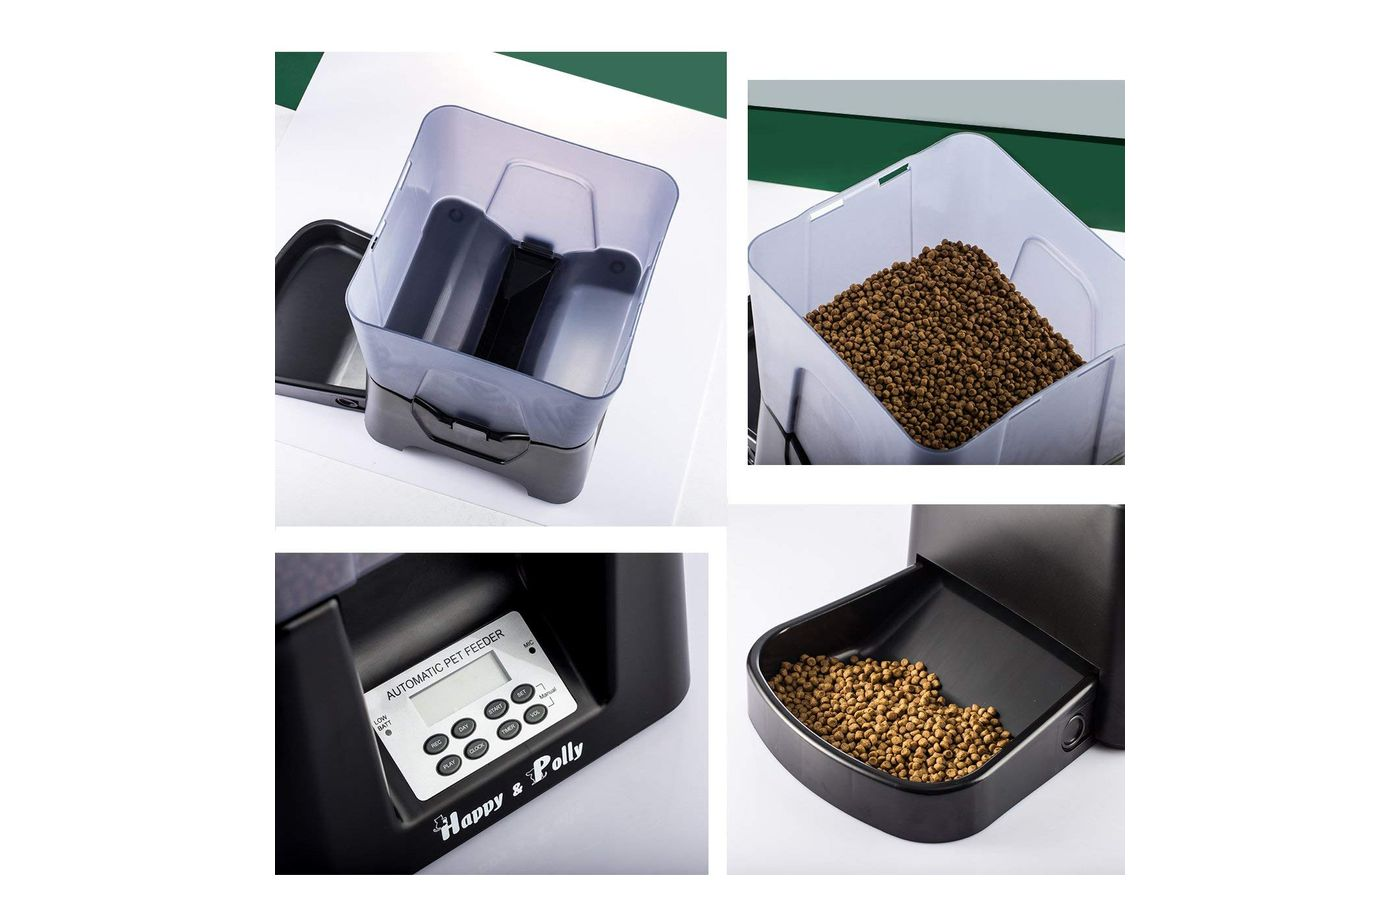 Happy and Polly Electronic Dry Food Automatic Cat feeder